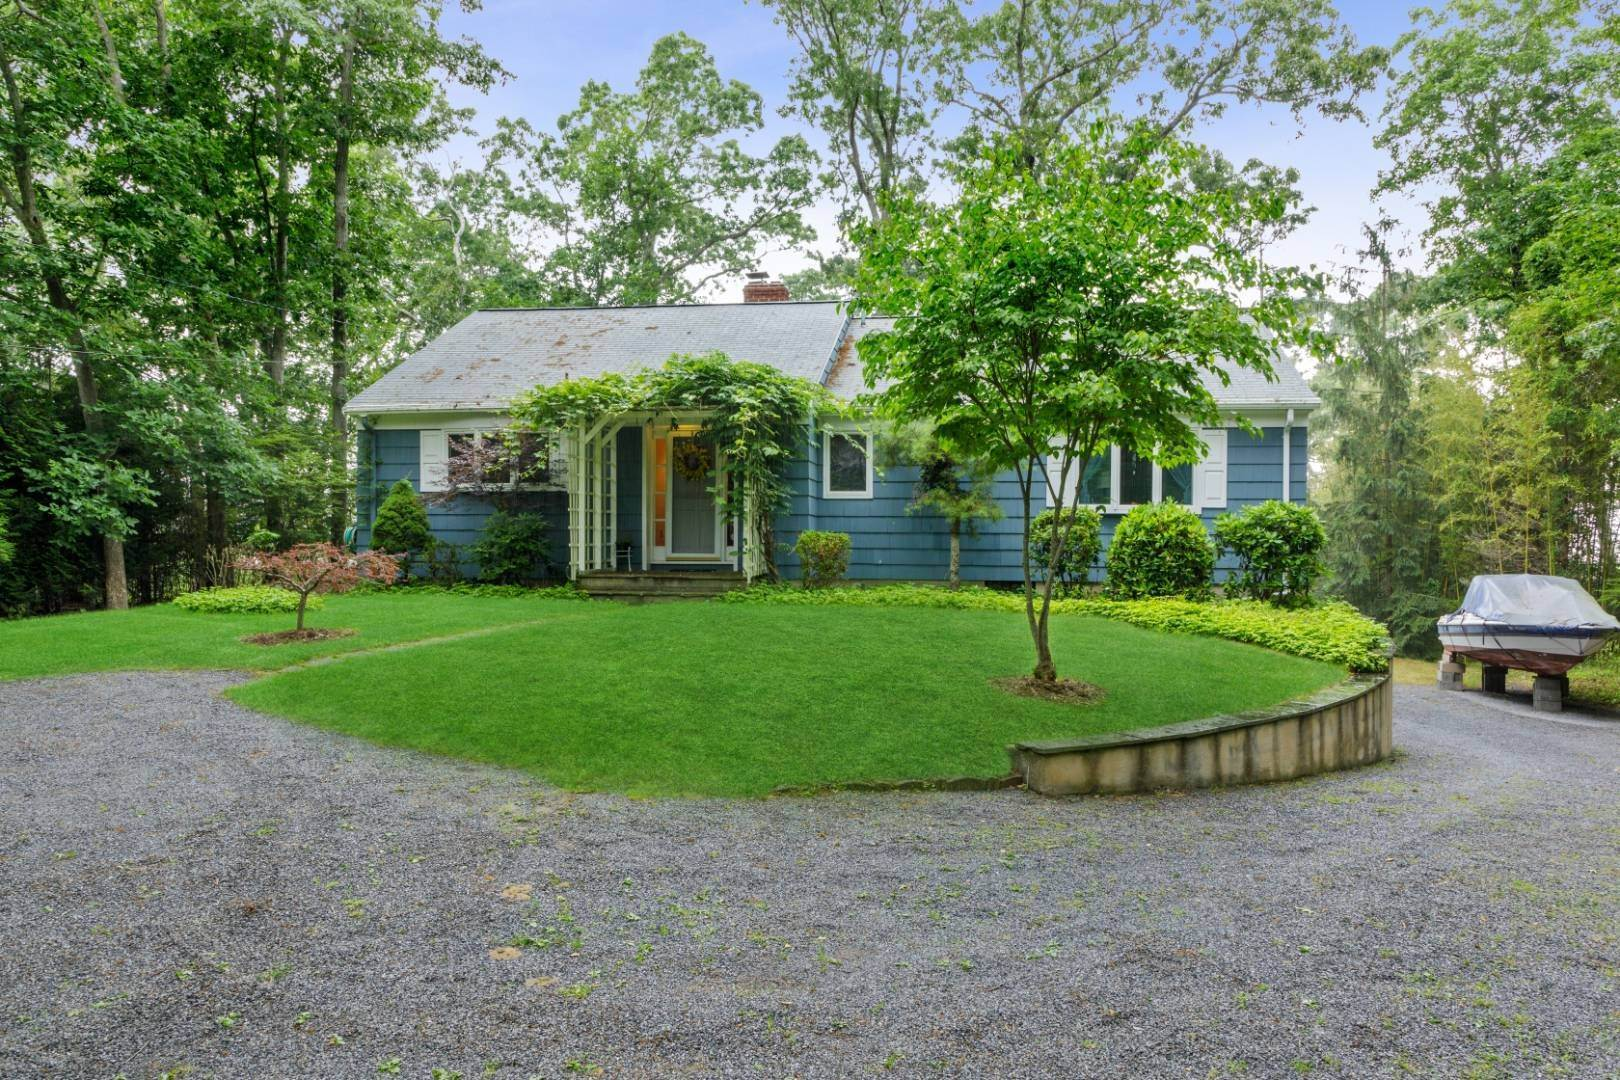 Single Family Home for Sale at Waterfront Ranch 166 Newtown Lane, Hampton Bays, NY 11946